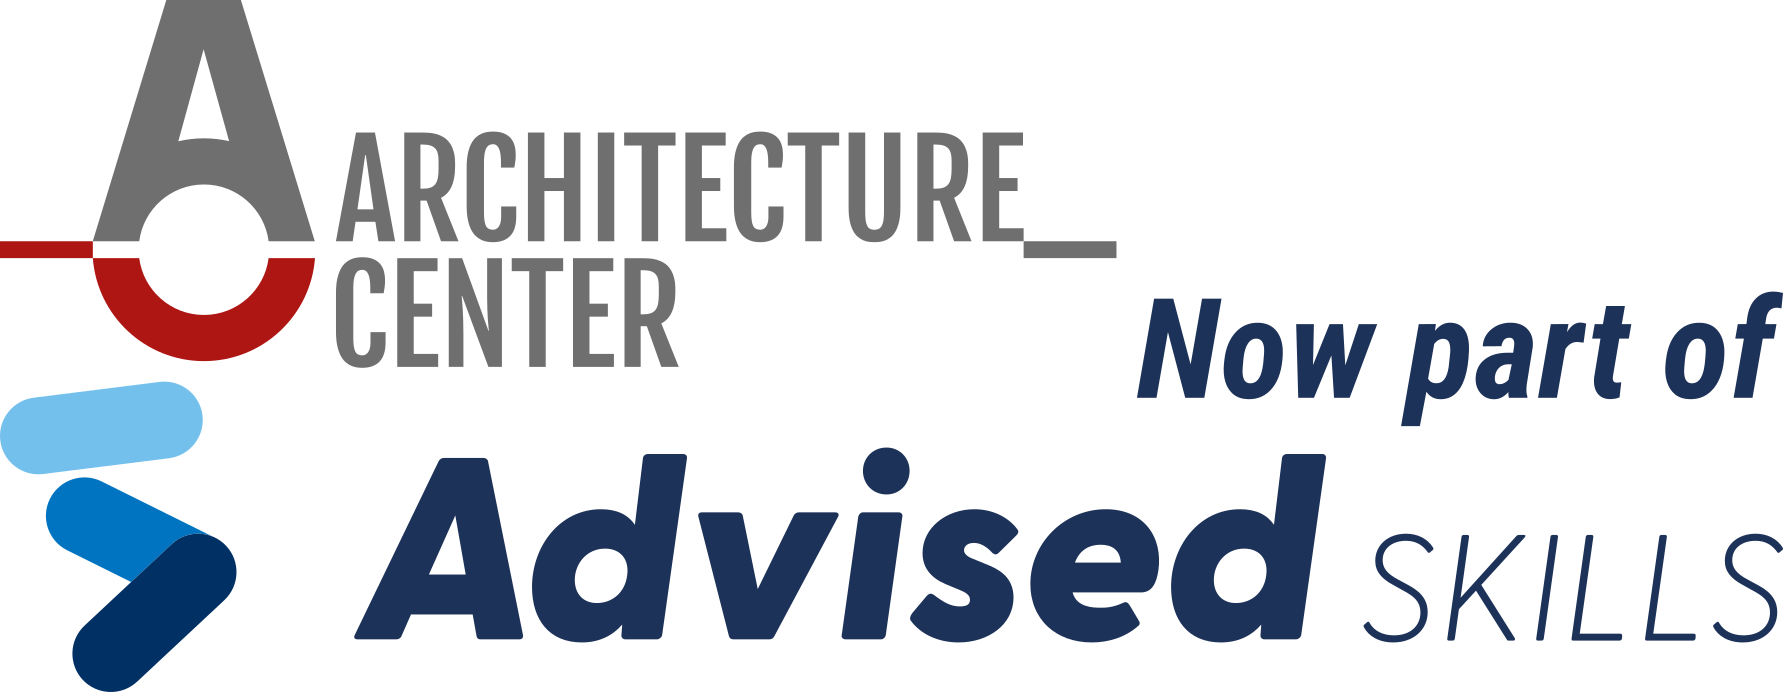 Architecture Center - Consultancy and training services of enterprise architecture